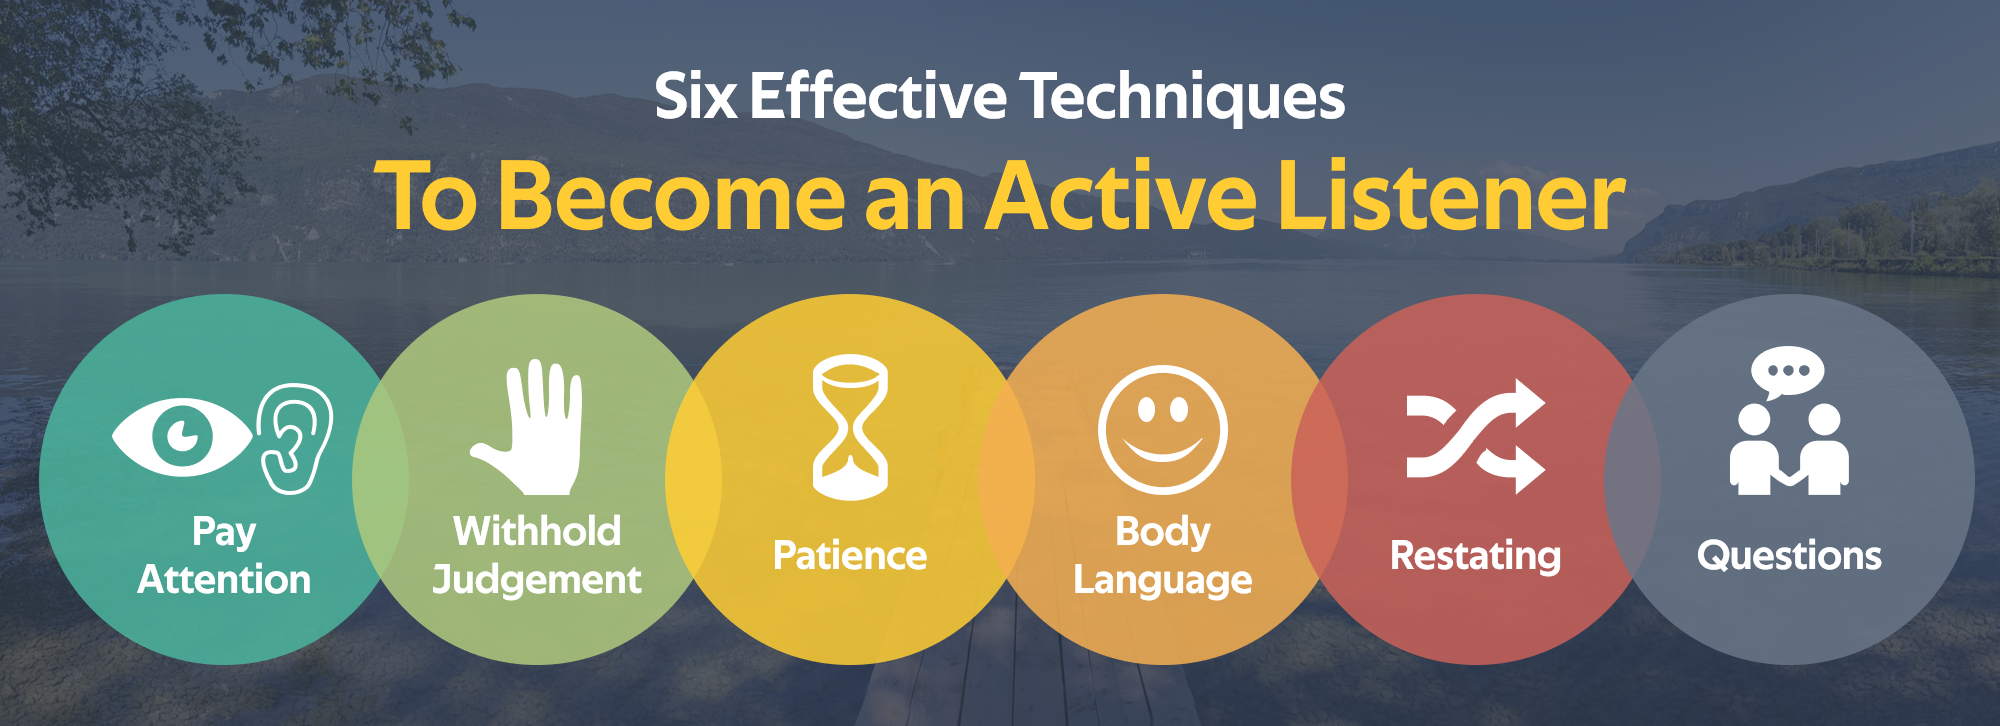 """How to Cultivate the """"Silent"""" Art of Active Listening   by Bertrand Wong    Live Your Life On Purpose   Medium"""